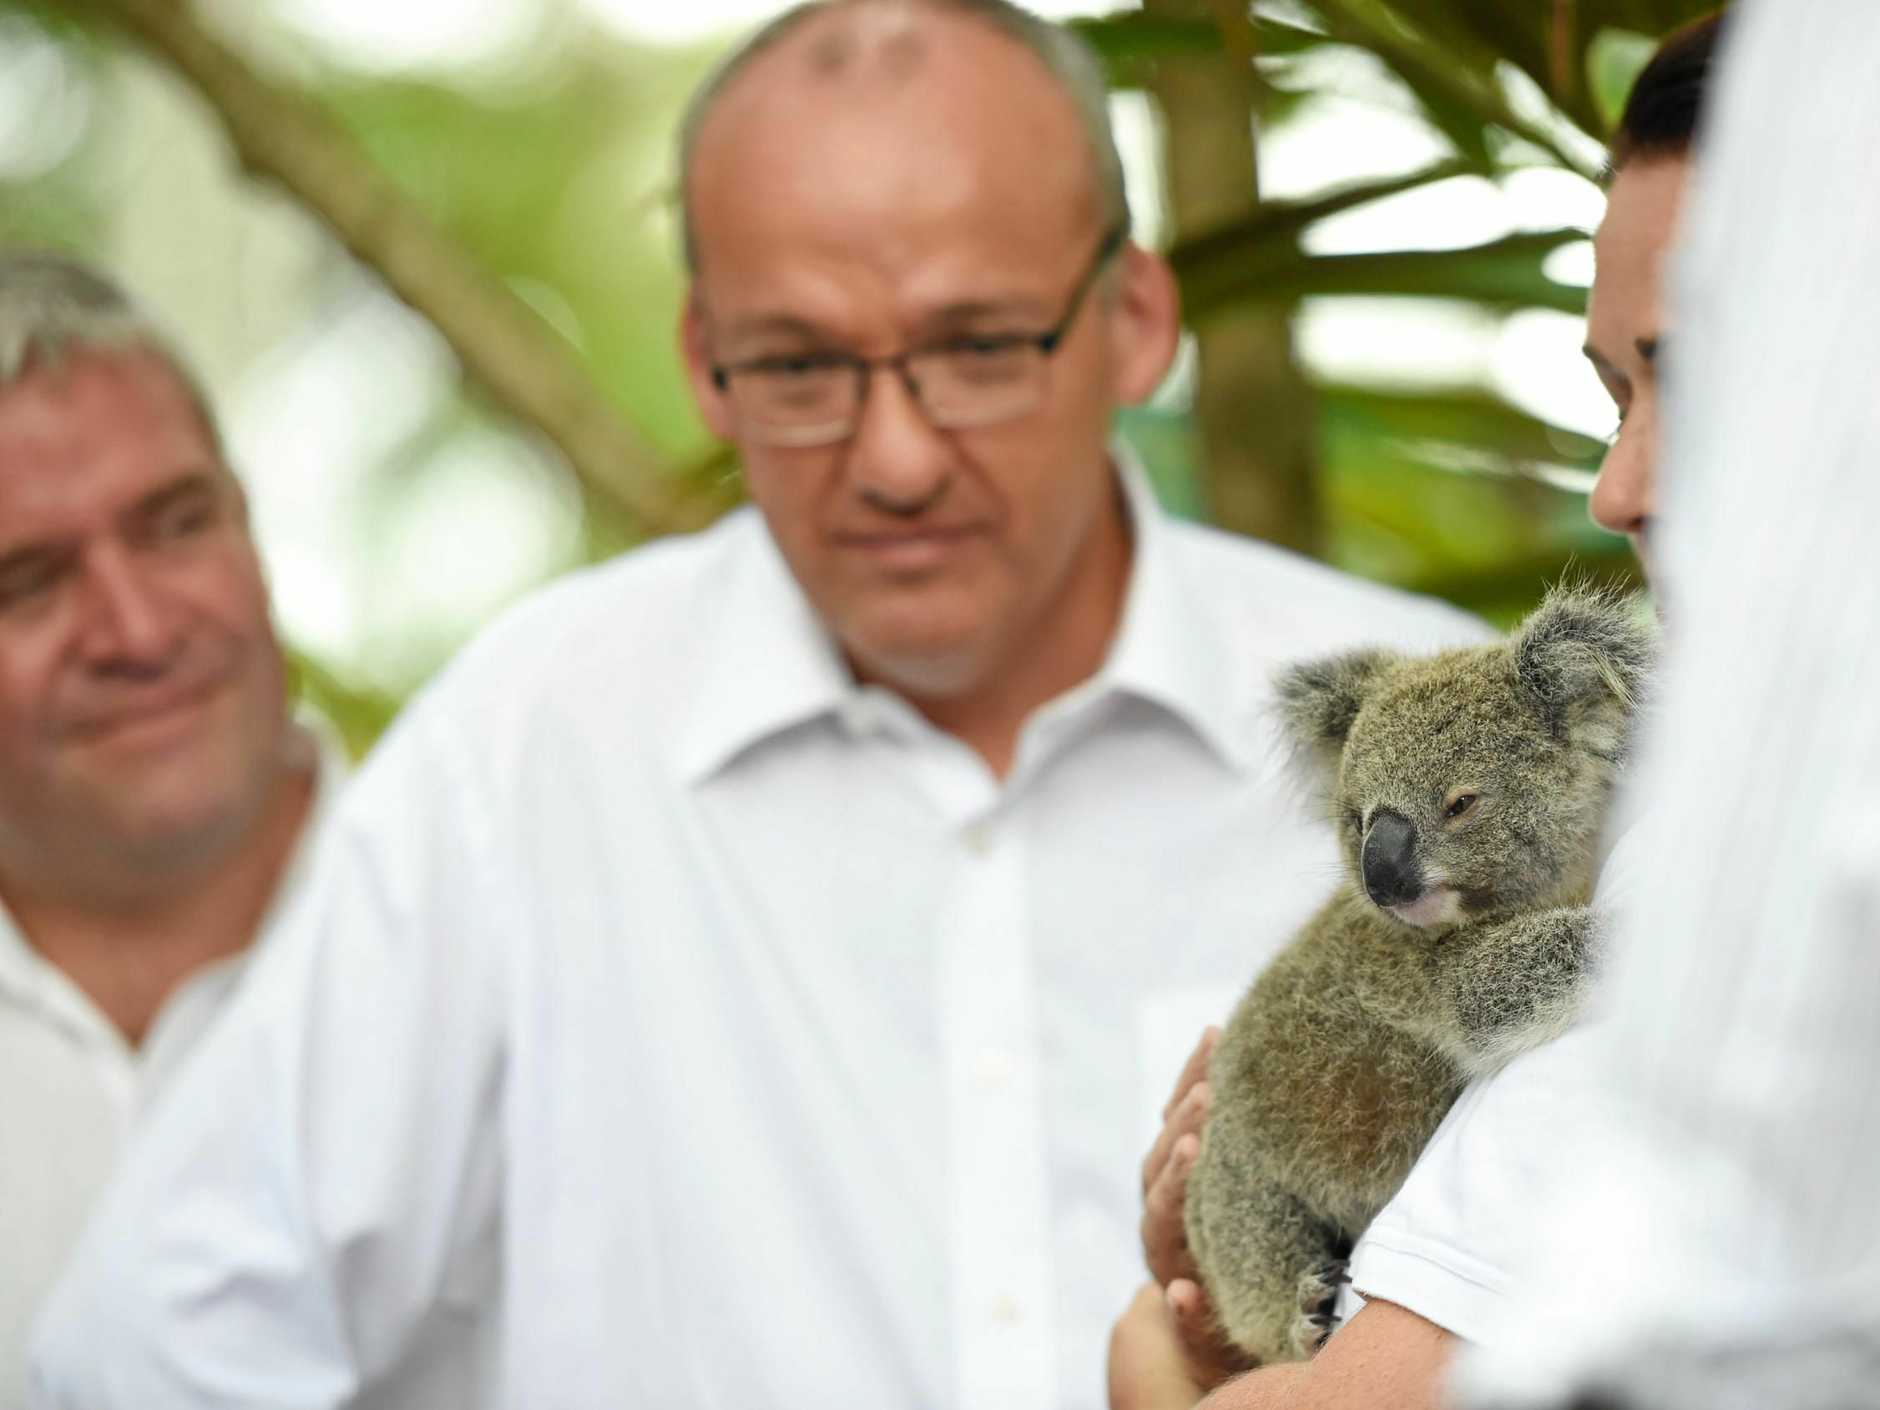 NSW Opposition Leader Luke Foley announces a national conservation initiative for koalas at the Koala Care Centre in Lismore. Photo Marc Stapelberg / The Northern Star